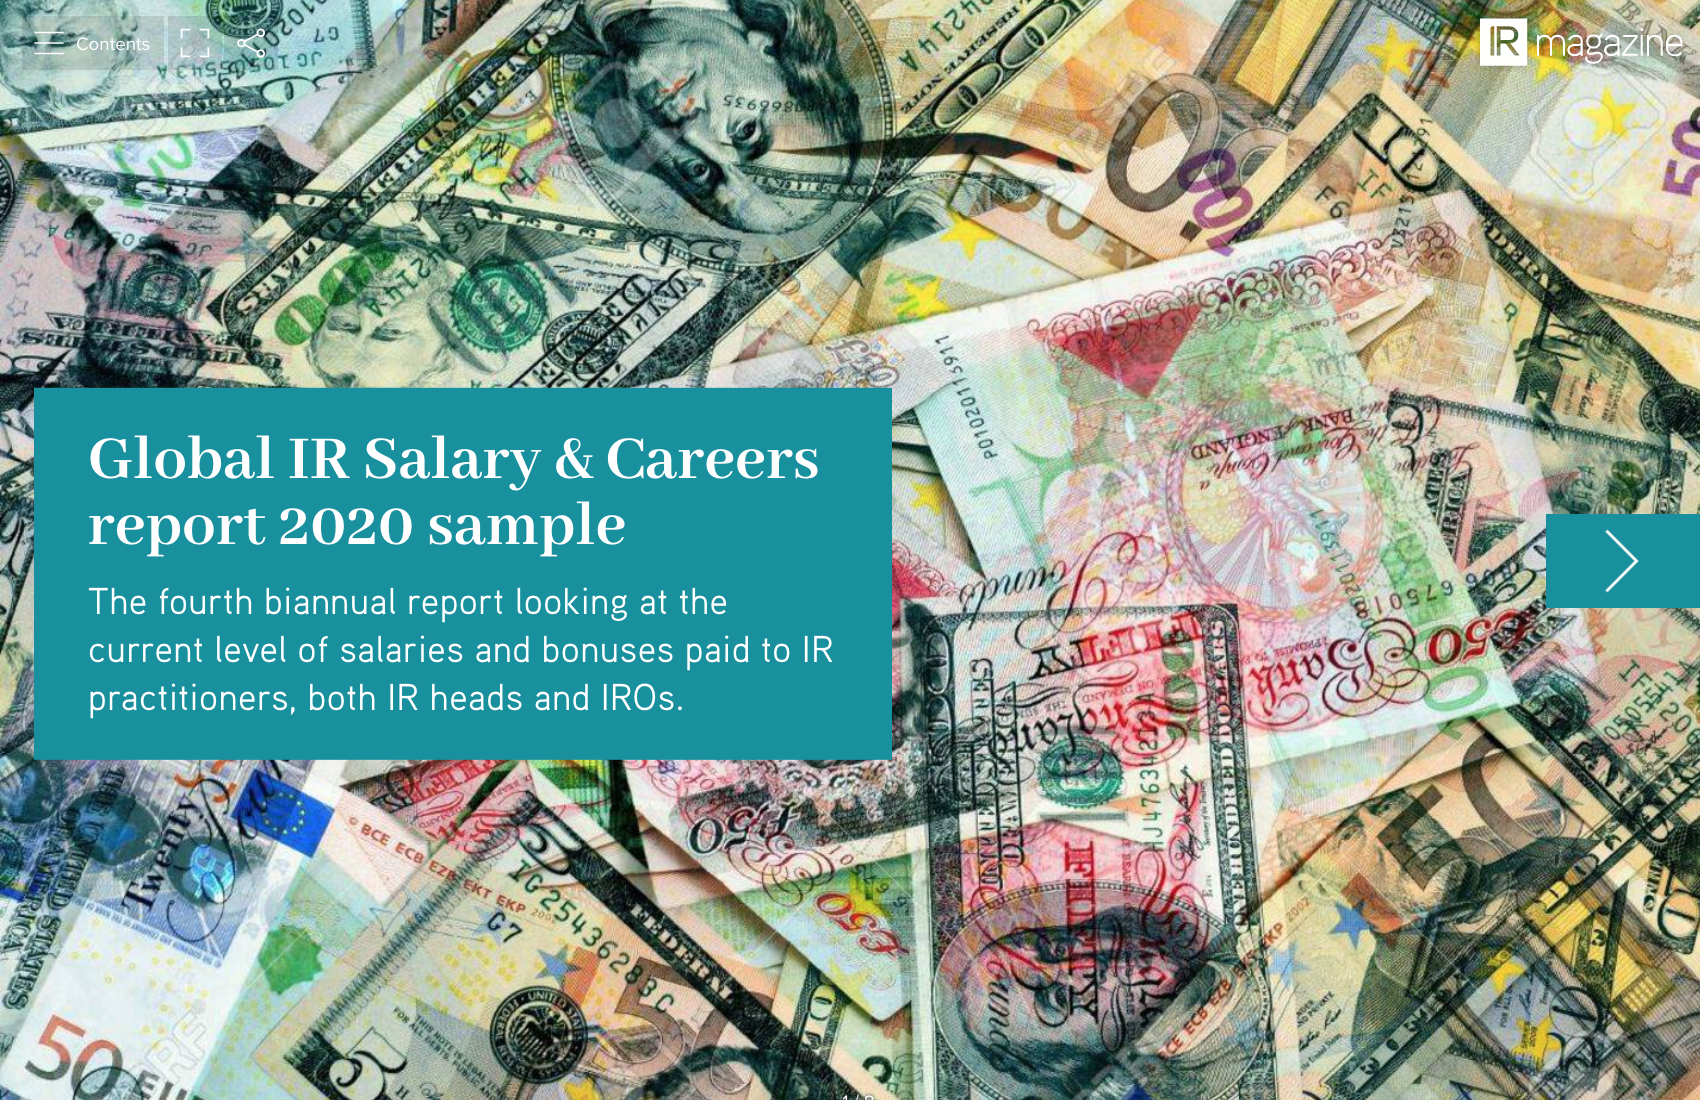 Global IR Salary & Careers research report